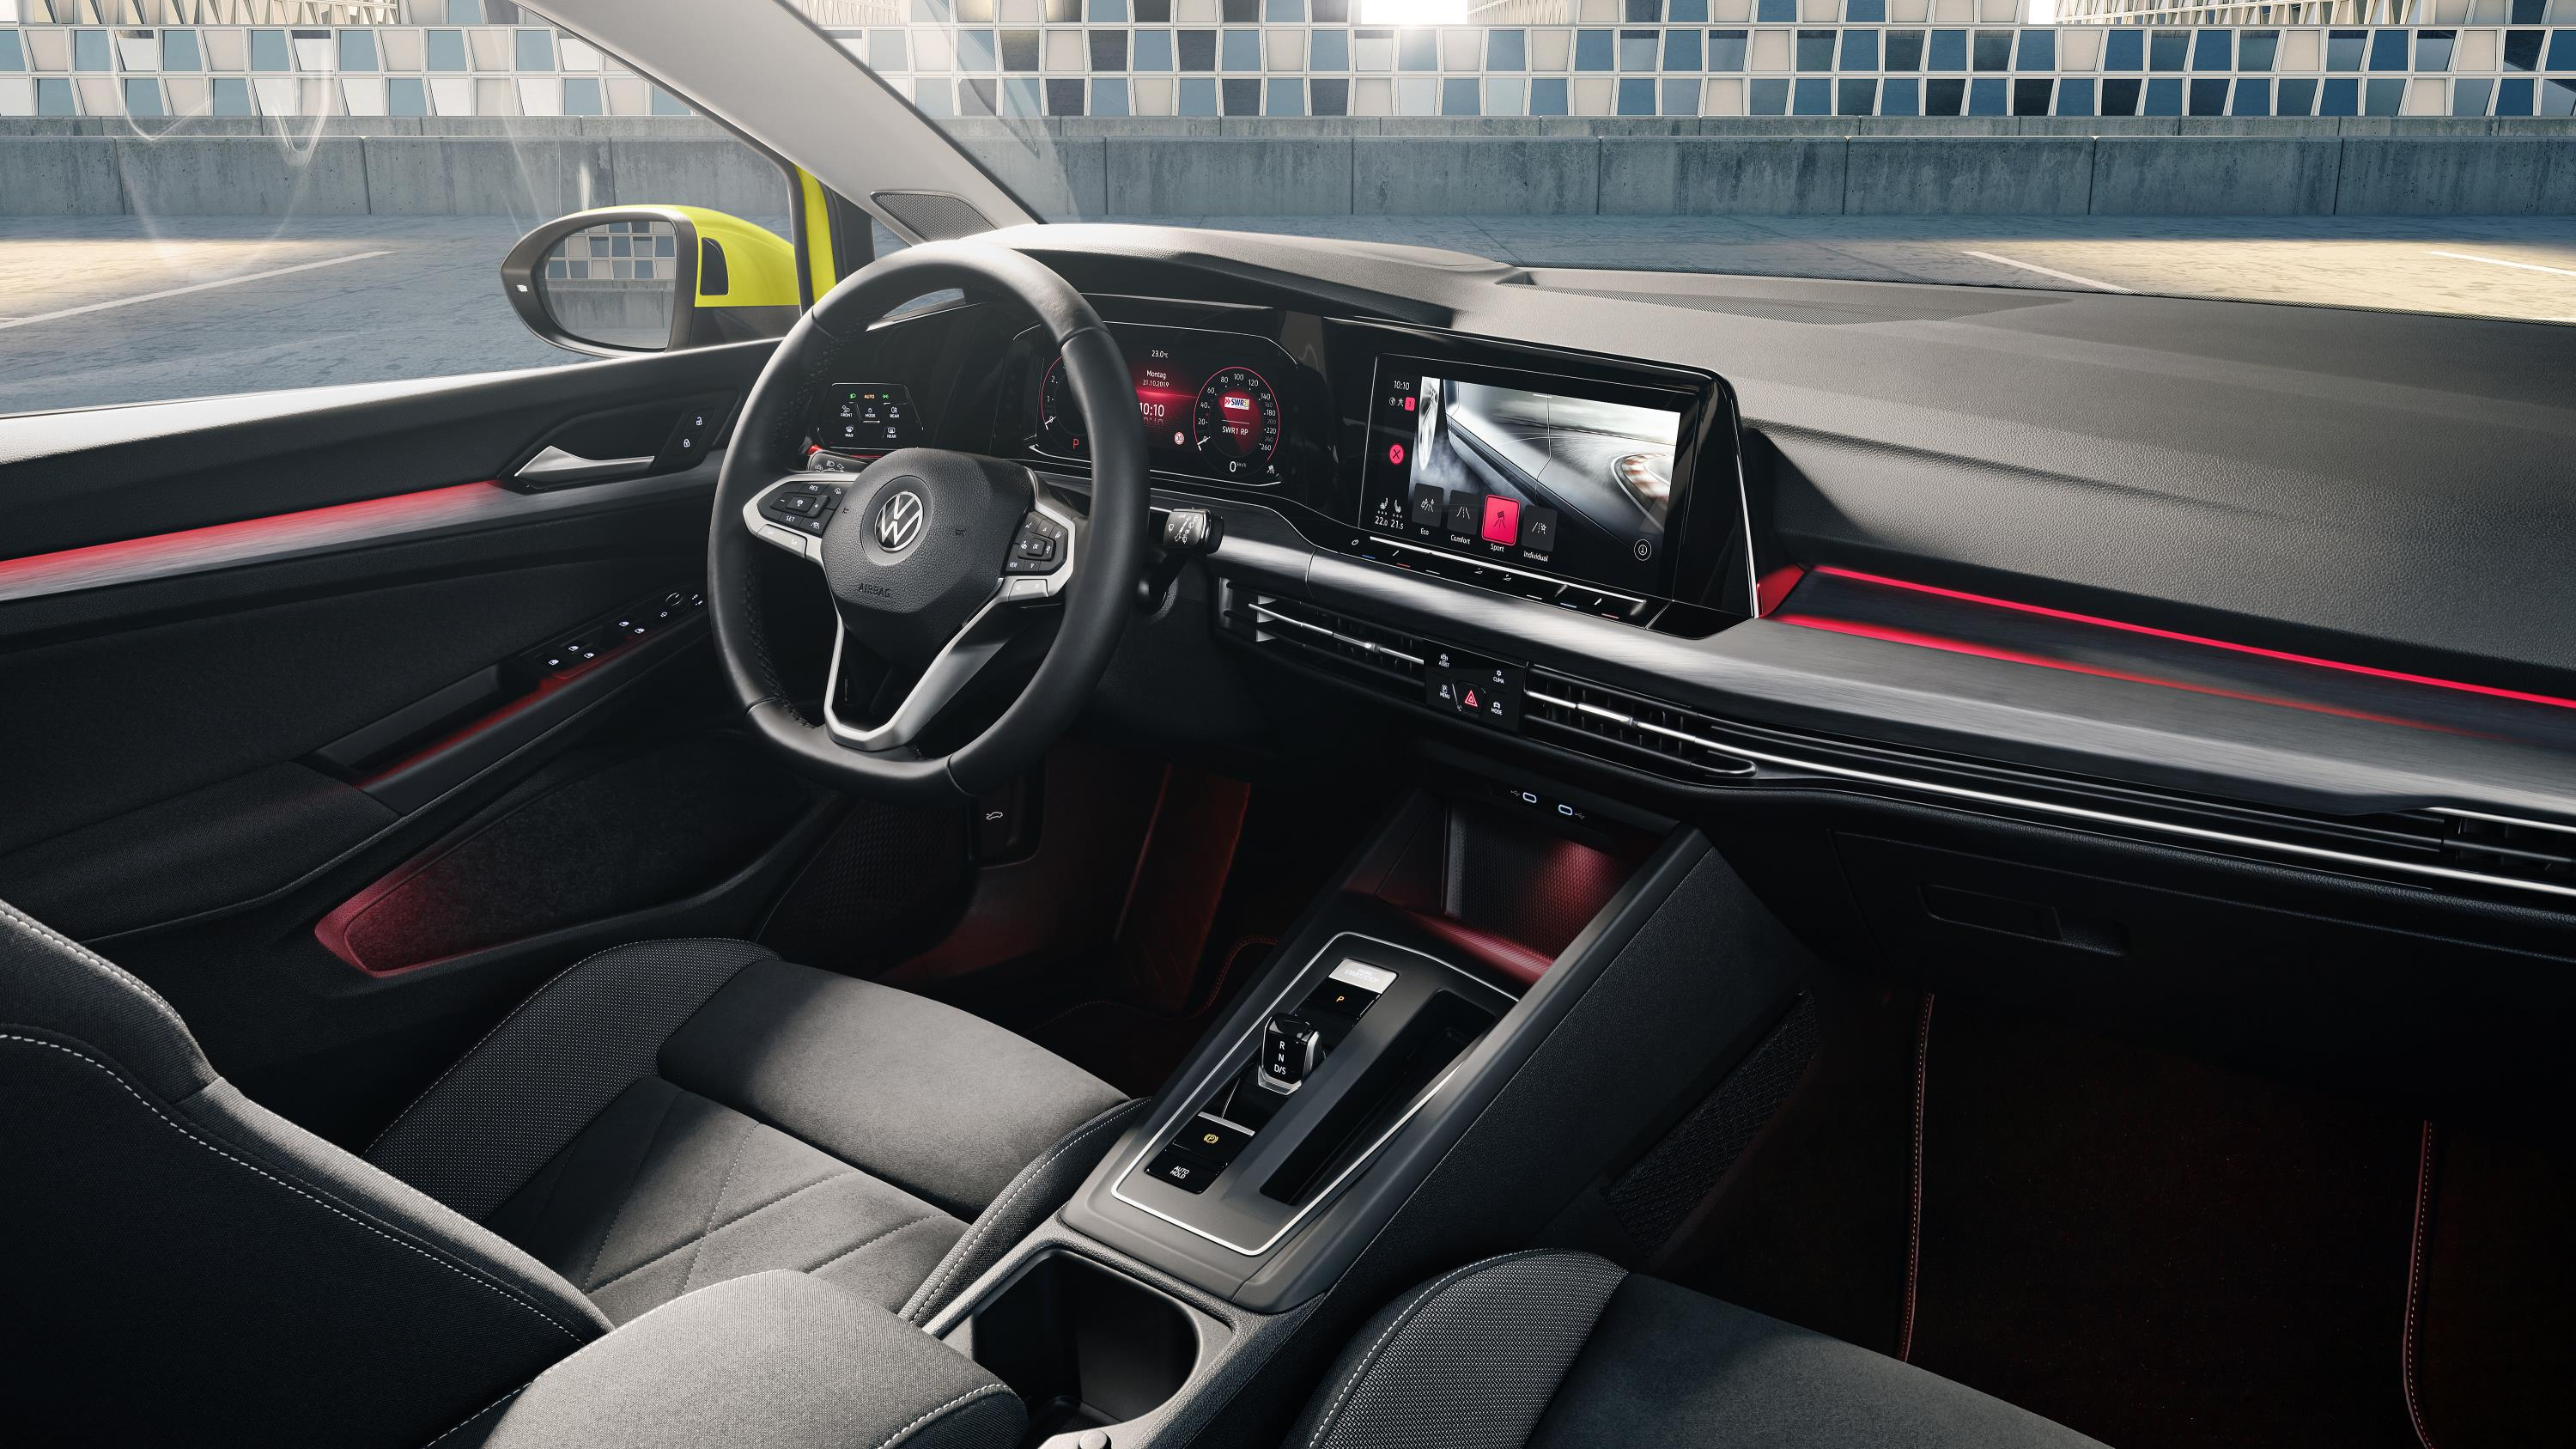 Golf 8 interior.jpg (658 KB)